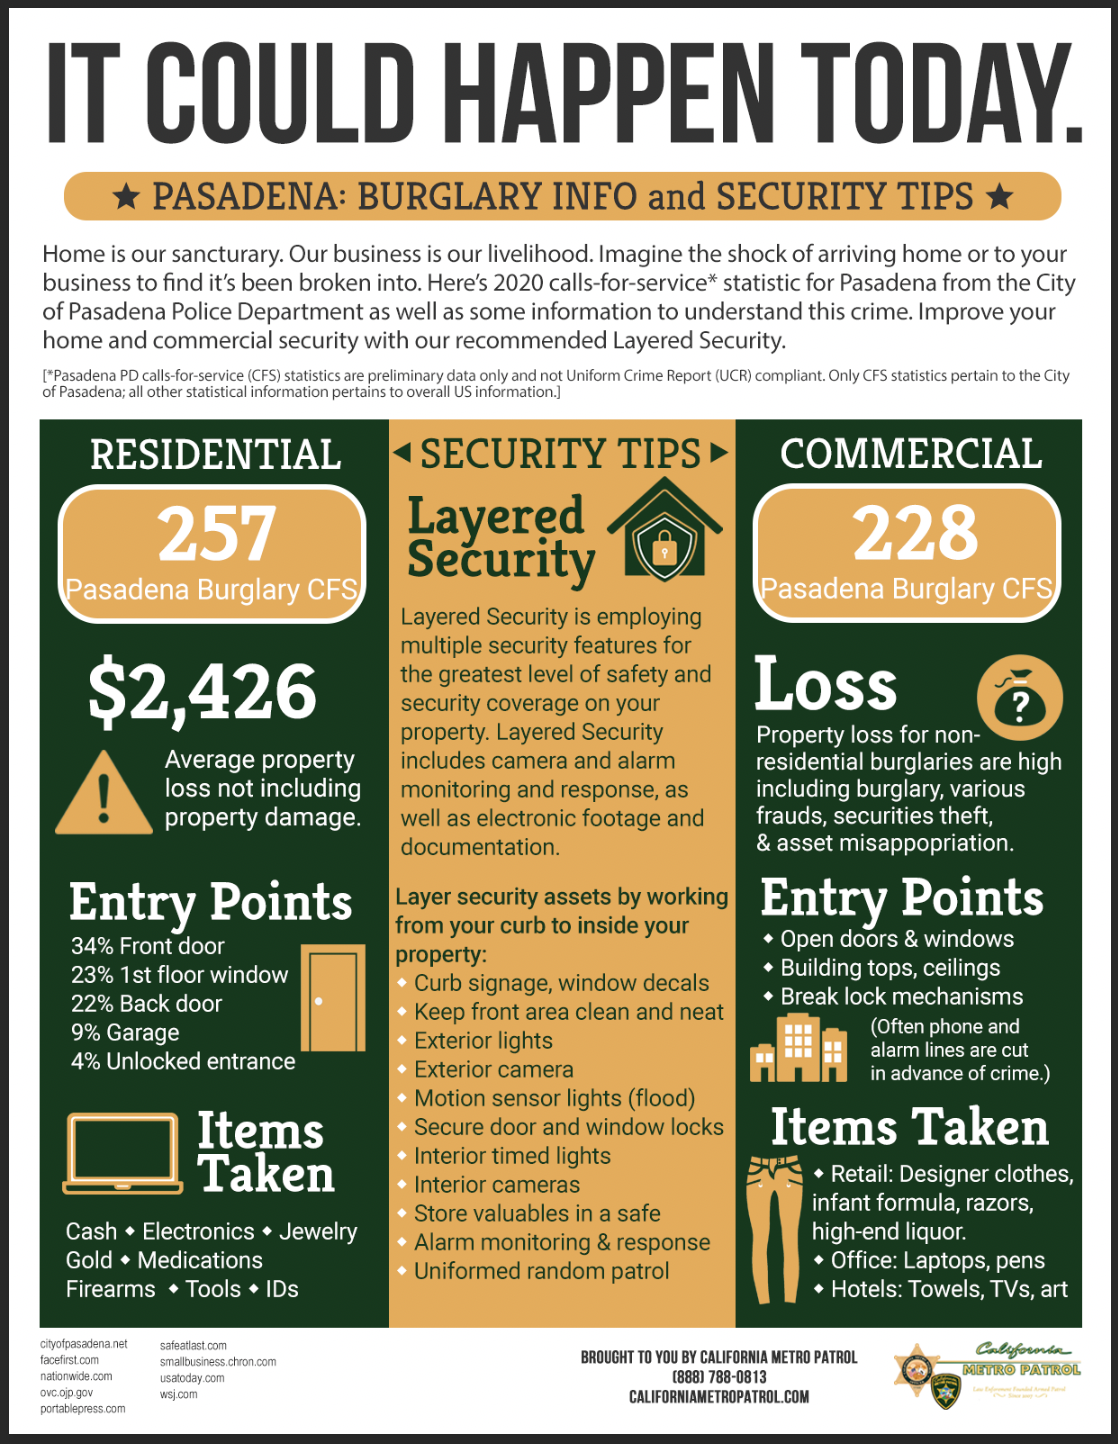 Pasadena Residential and Commercial Burglary Infographic